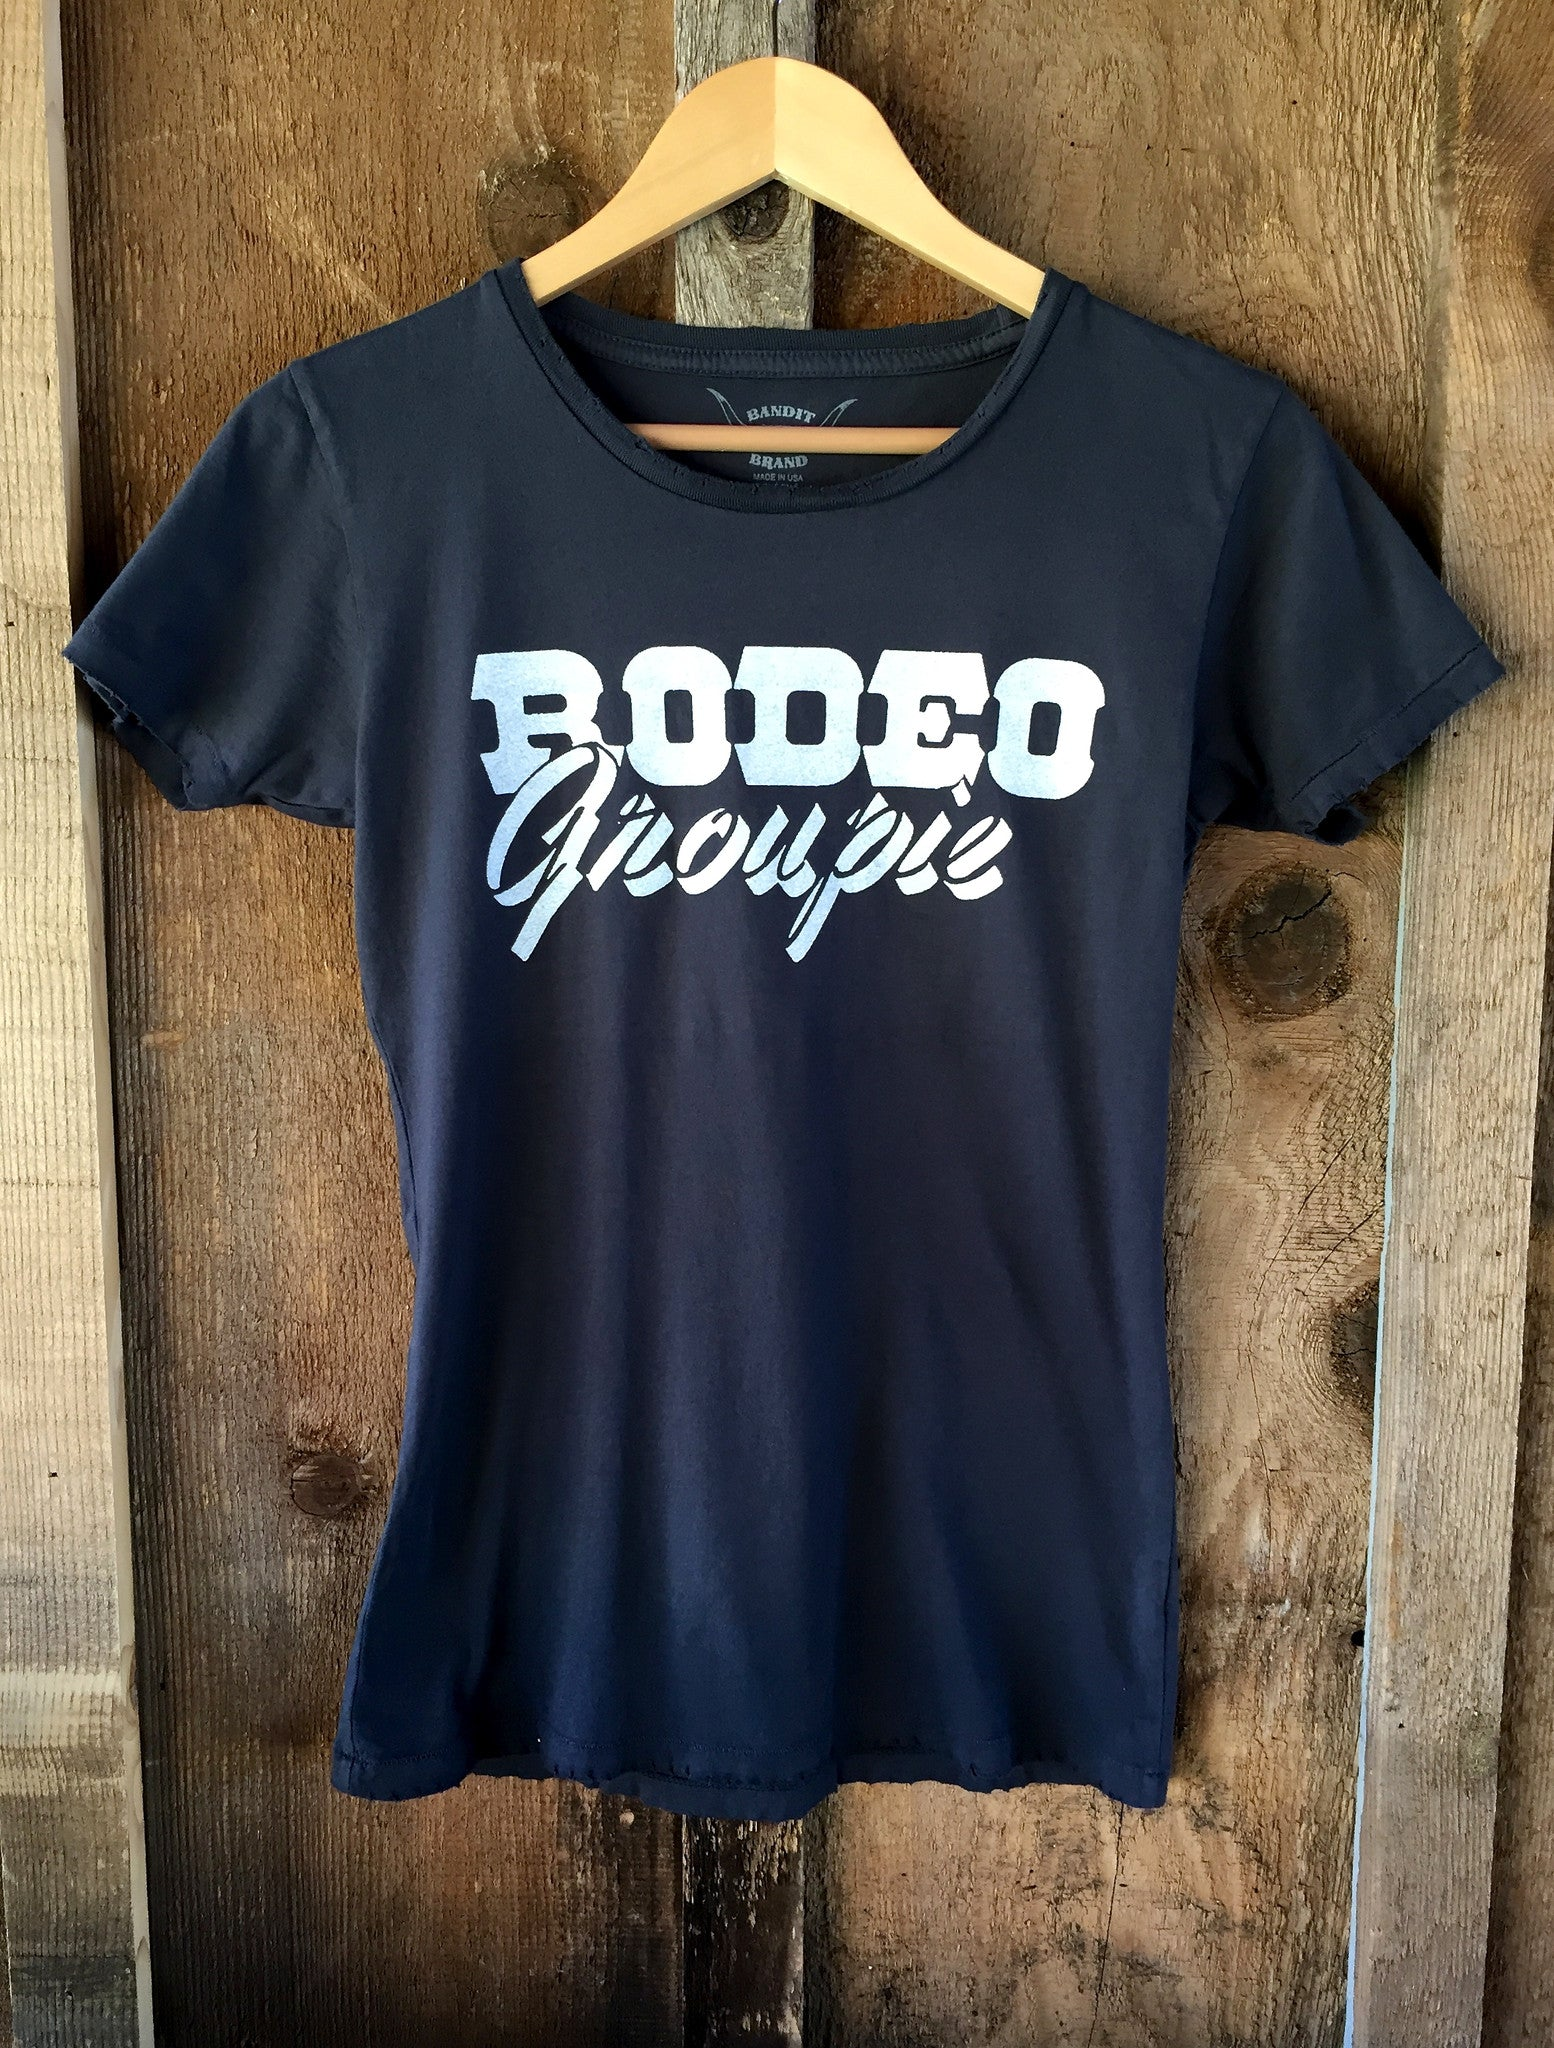 Rodeo Groupie Womens Tee Blk/White